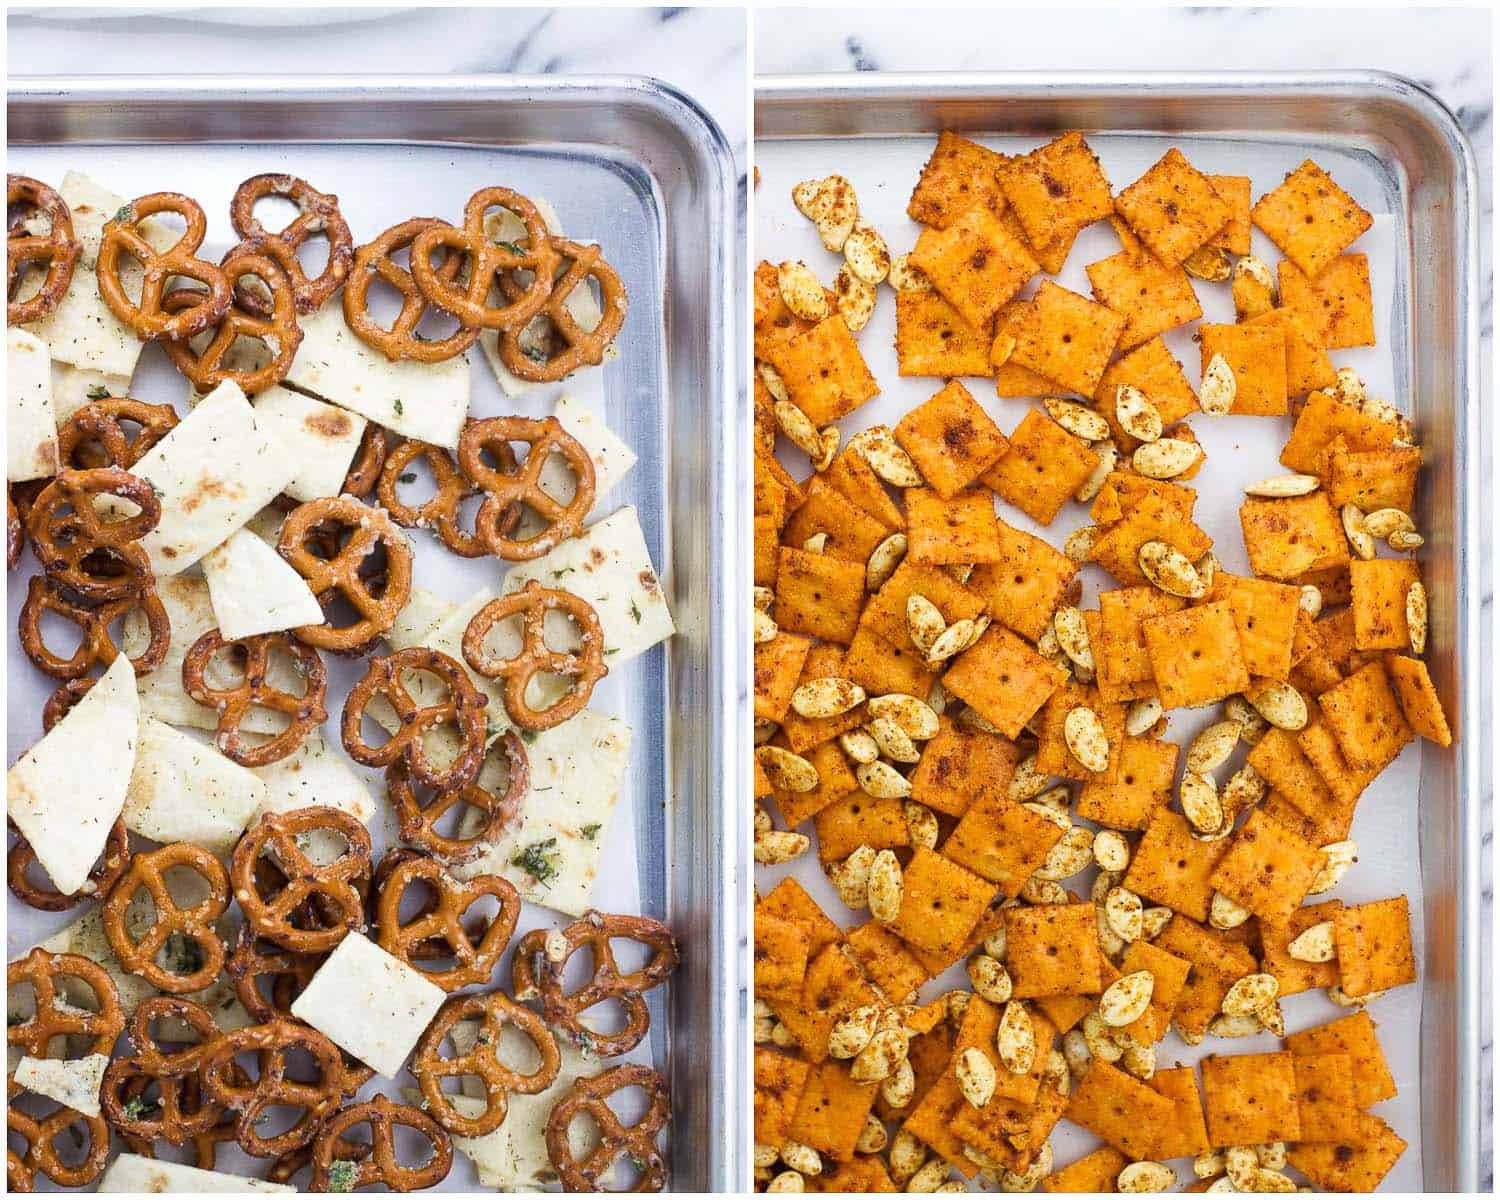 A side-by-side image collage of the pretzels and tortilla strips and cheese crackers and pumpkin seeds laid out onto rimmed baking sheets